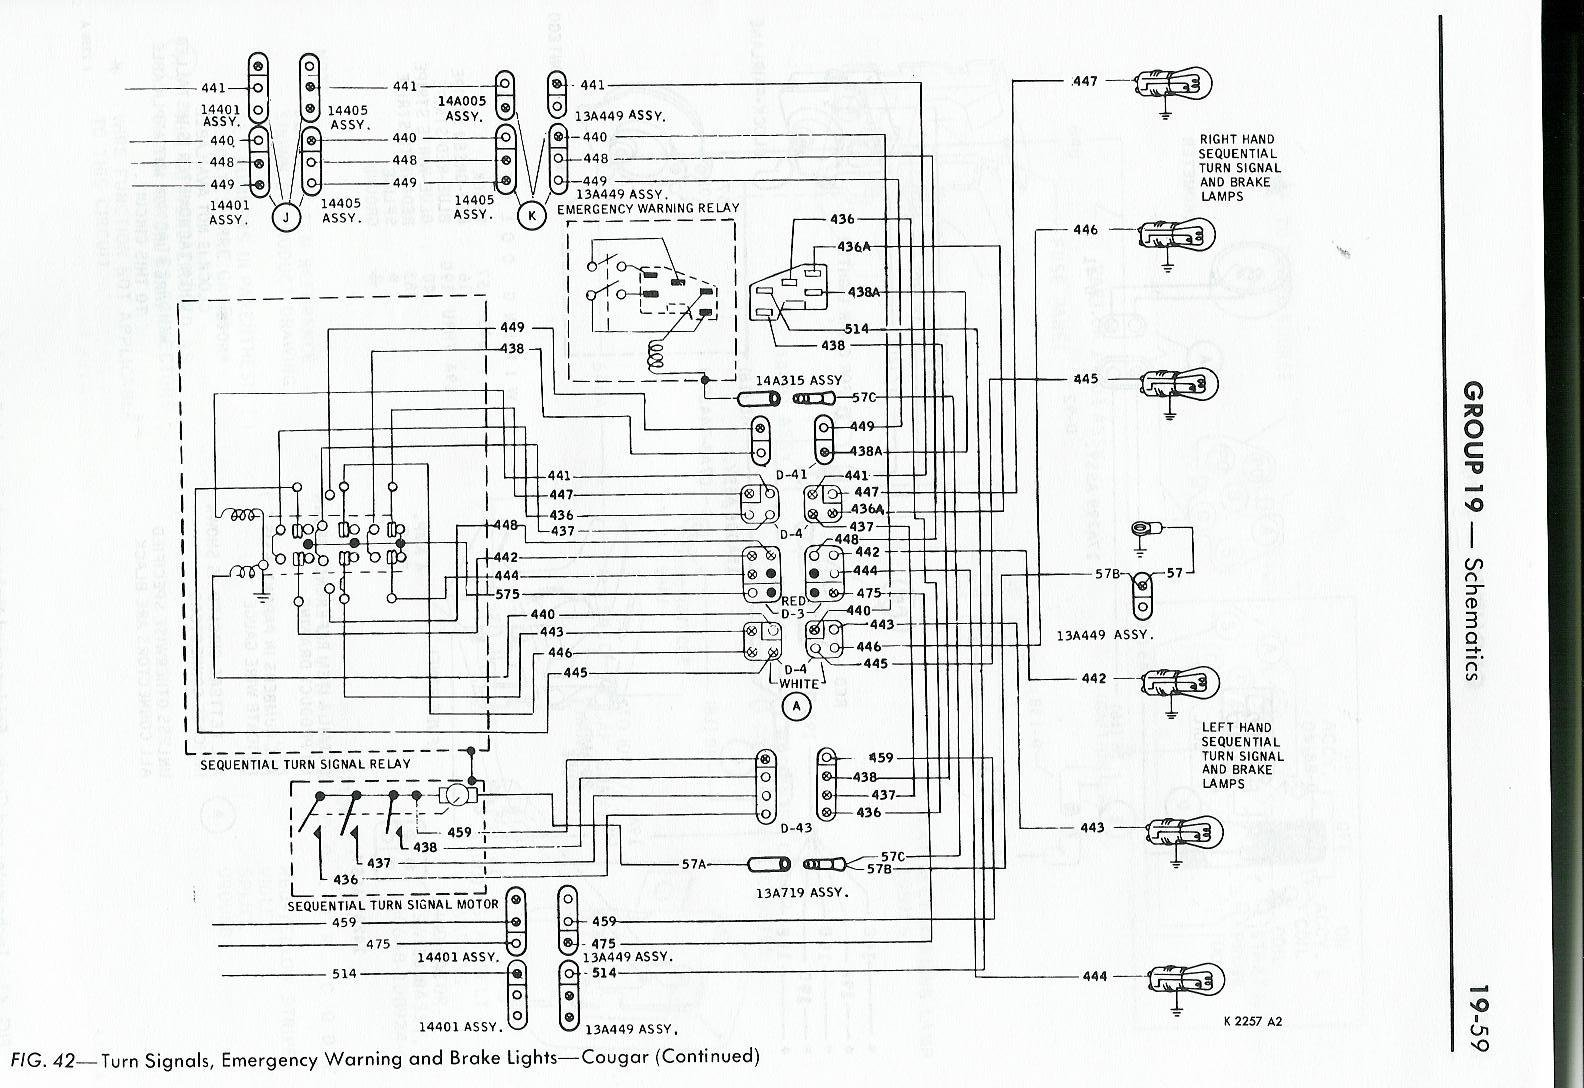 wiring diagram for 1971 mustang the wiring diagram 1971 mustang alternator wiring harness diagram 1971 wiring diagram